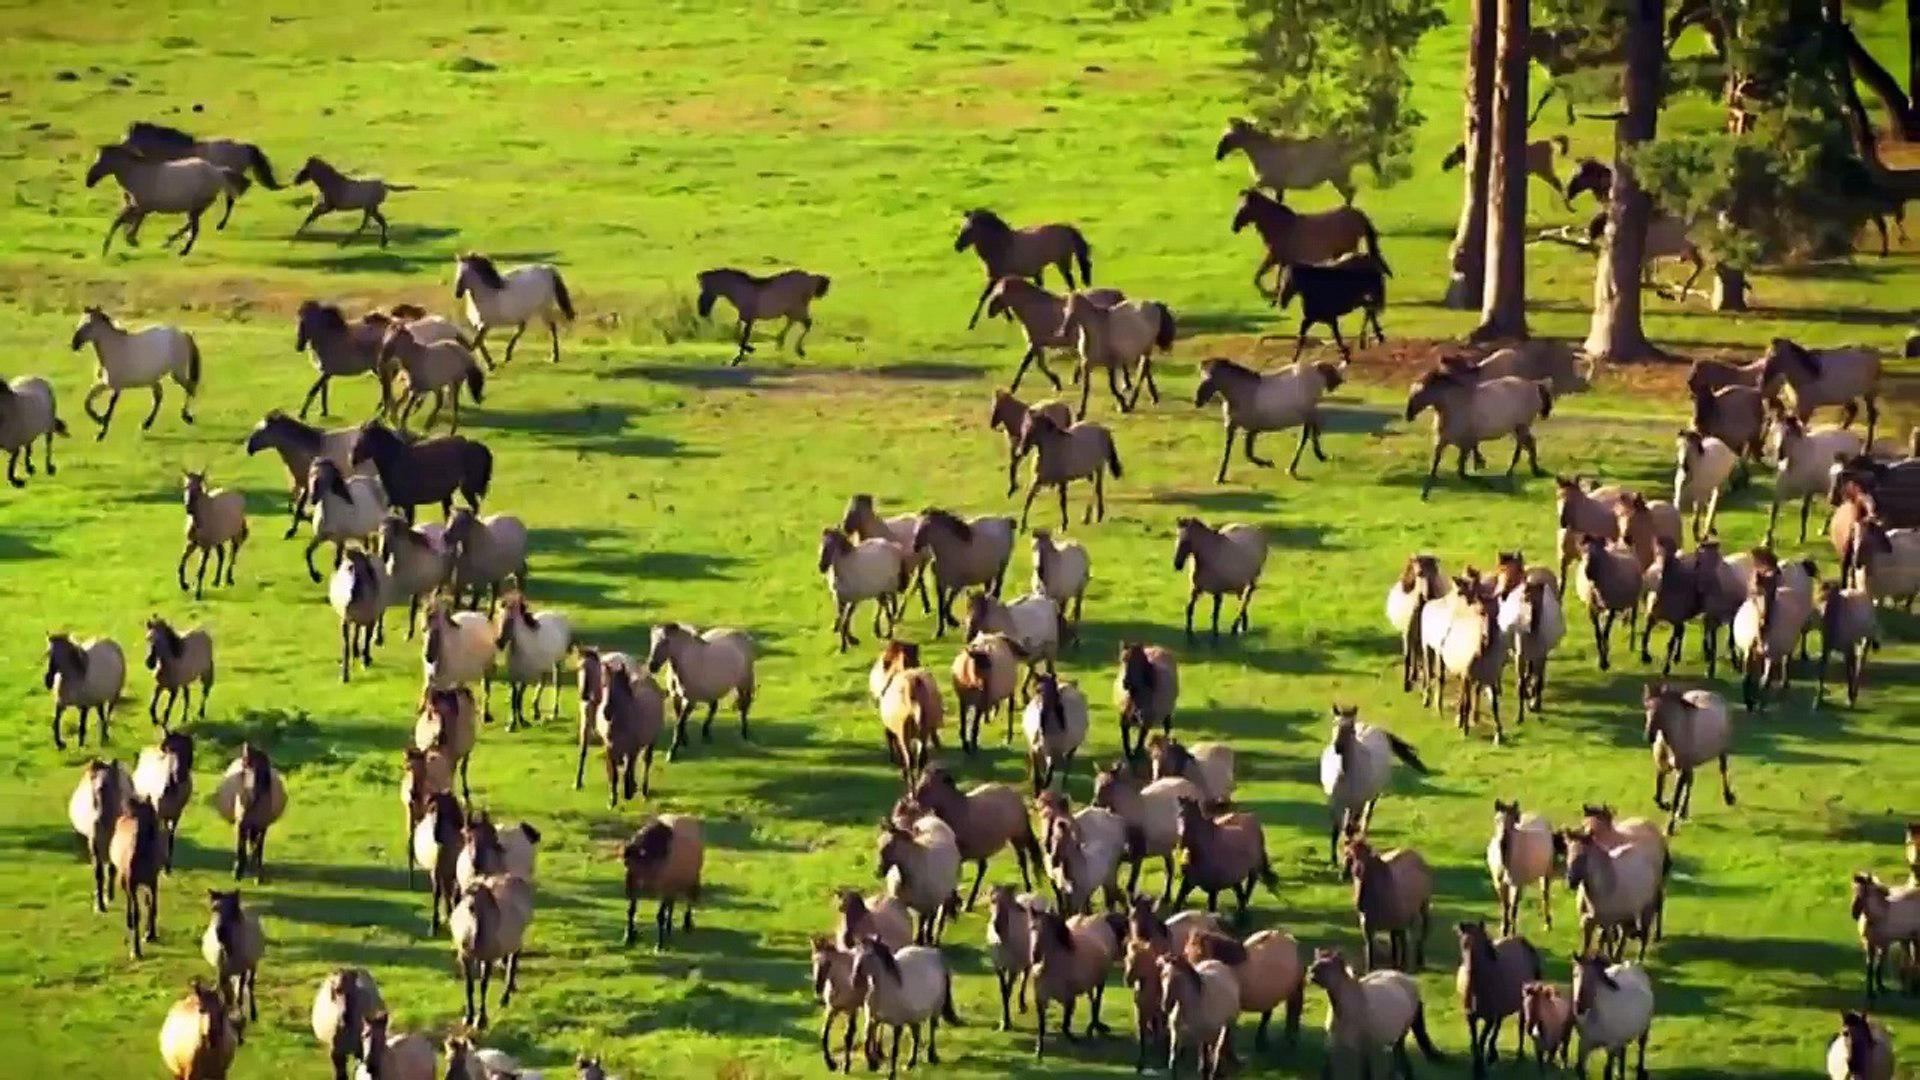 Wild Horses Where Horses Live The Amazing Horses Videos With Beautiful Music Must Watch Video Dailymotion